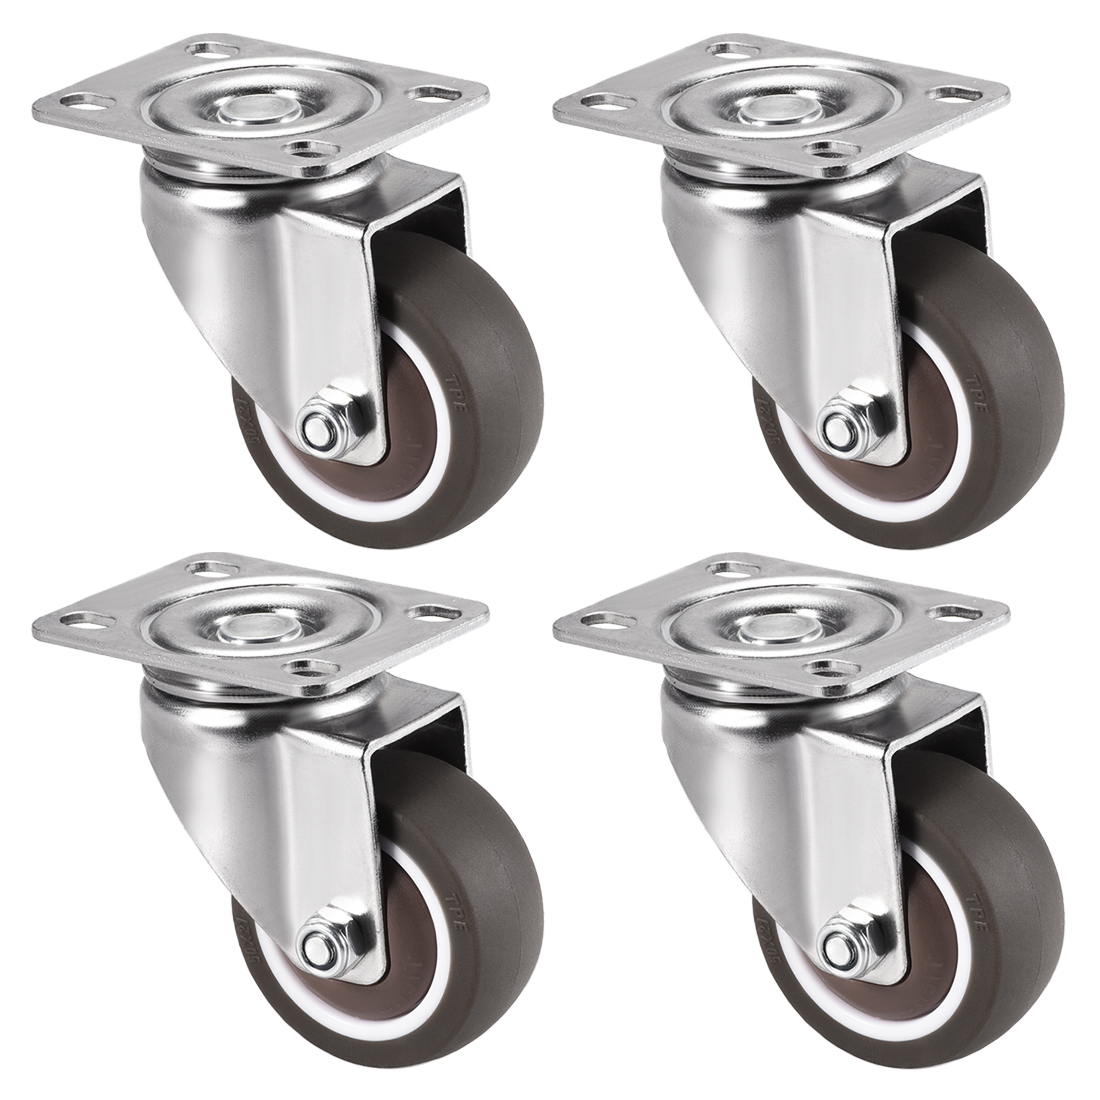 Swivel Caster Wheels 2 inch Dia TPR Caster Top Plate 77lb Capacity , 4pcs